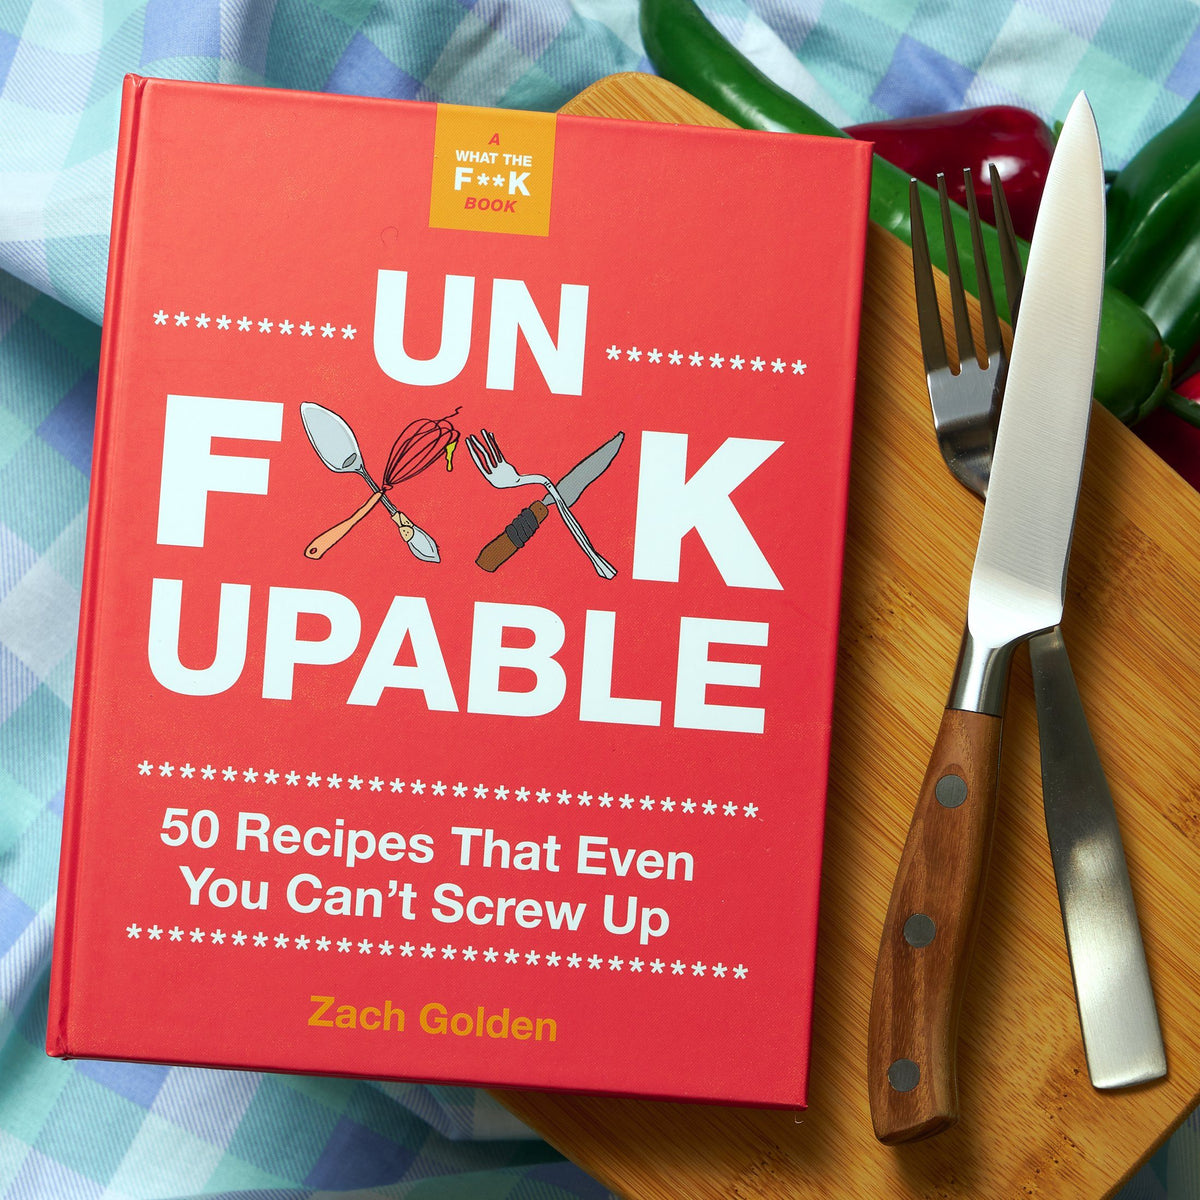 Unf*ckupable Cookbook - 50 Recipes That Even You Can't Screw Up